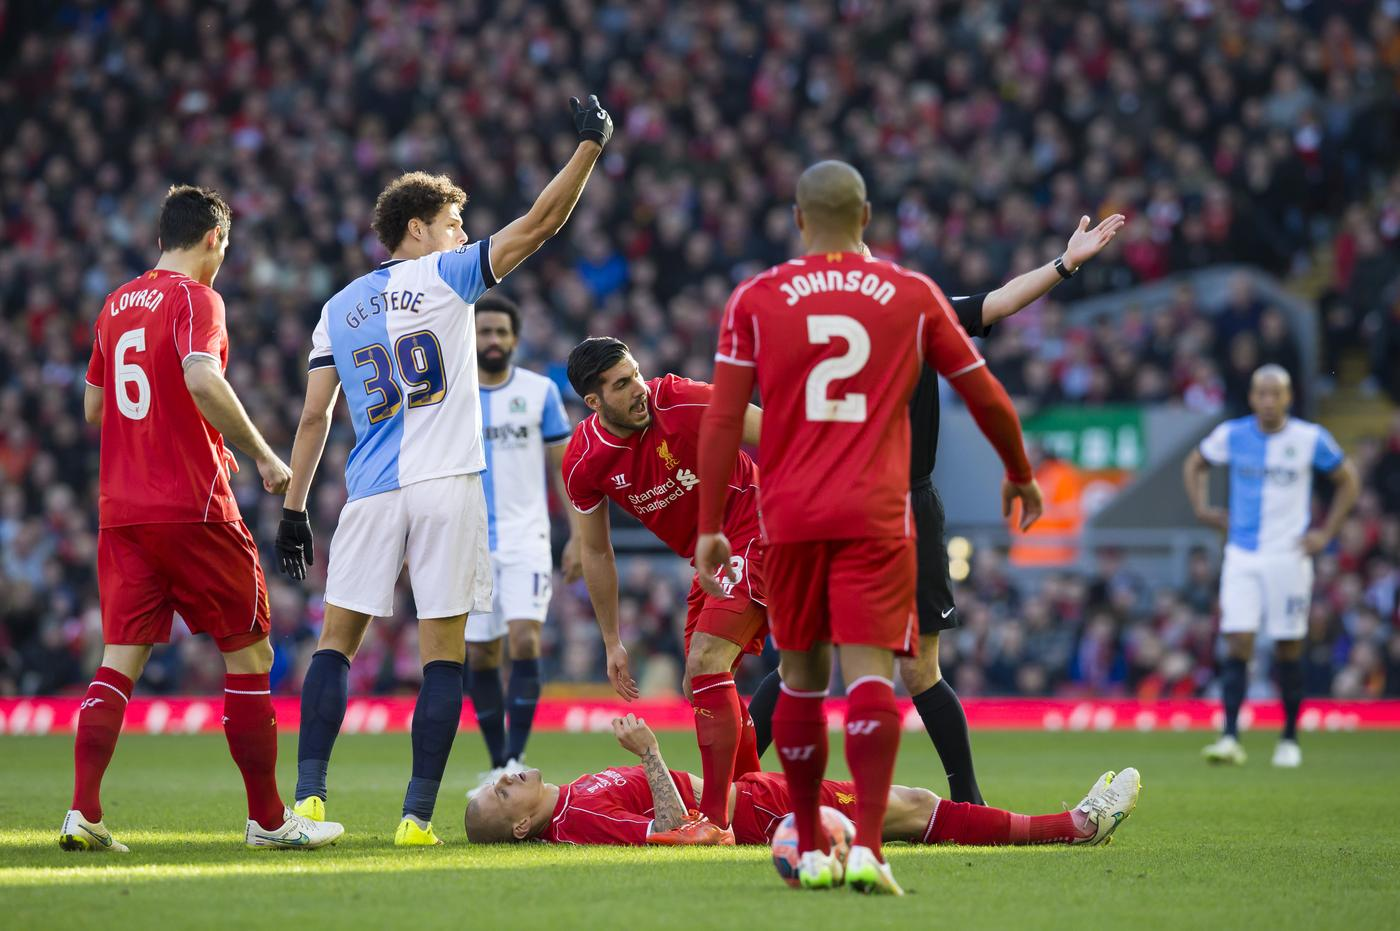 Losing Martin Skrtel to injury exposed some of Liverpool's attacking flaws